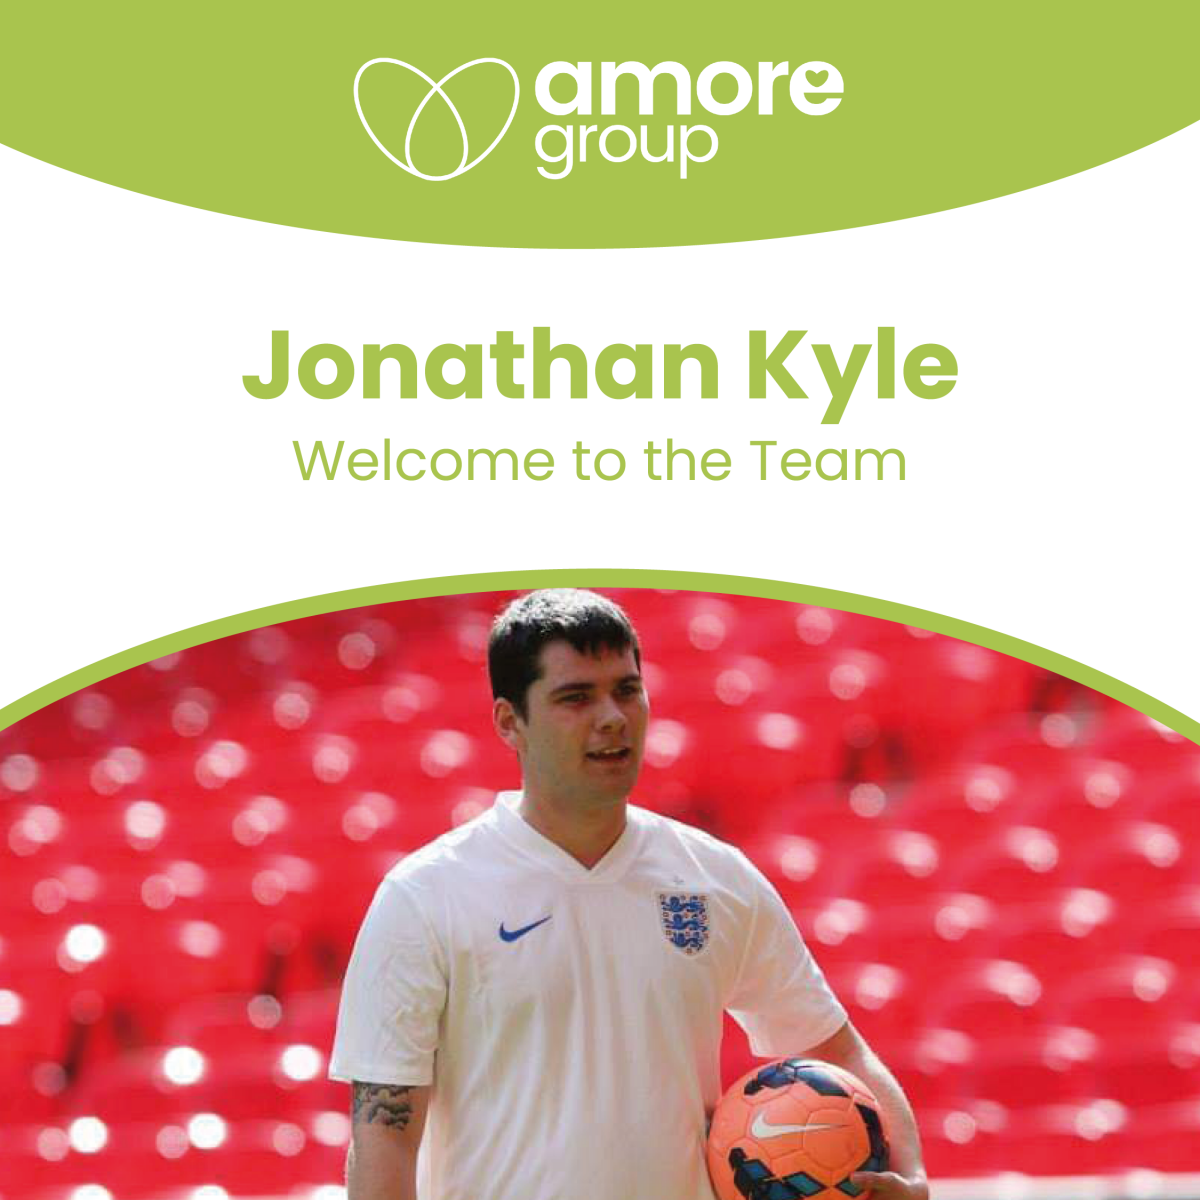 Welcome to the team Jonathan Kyle!